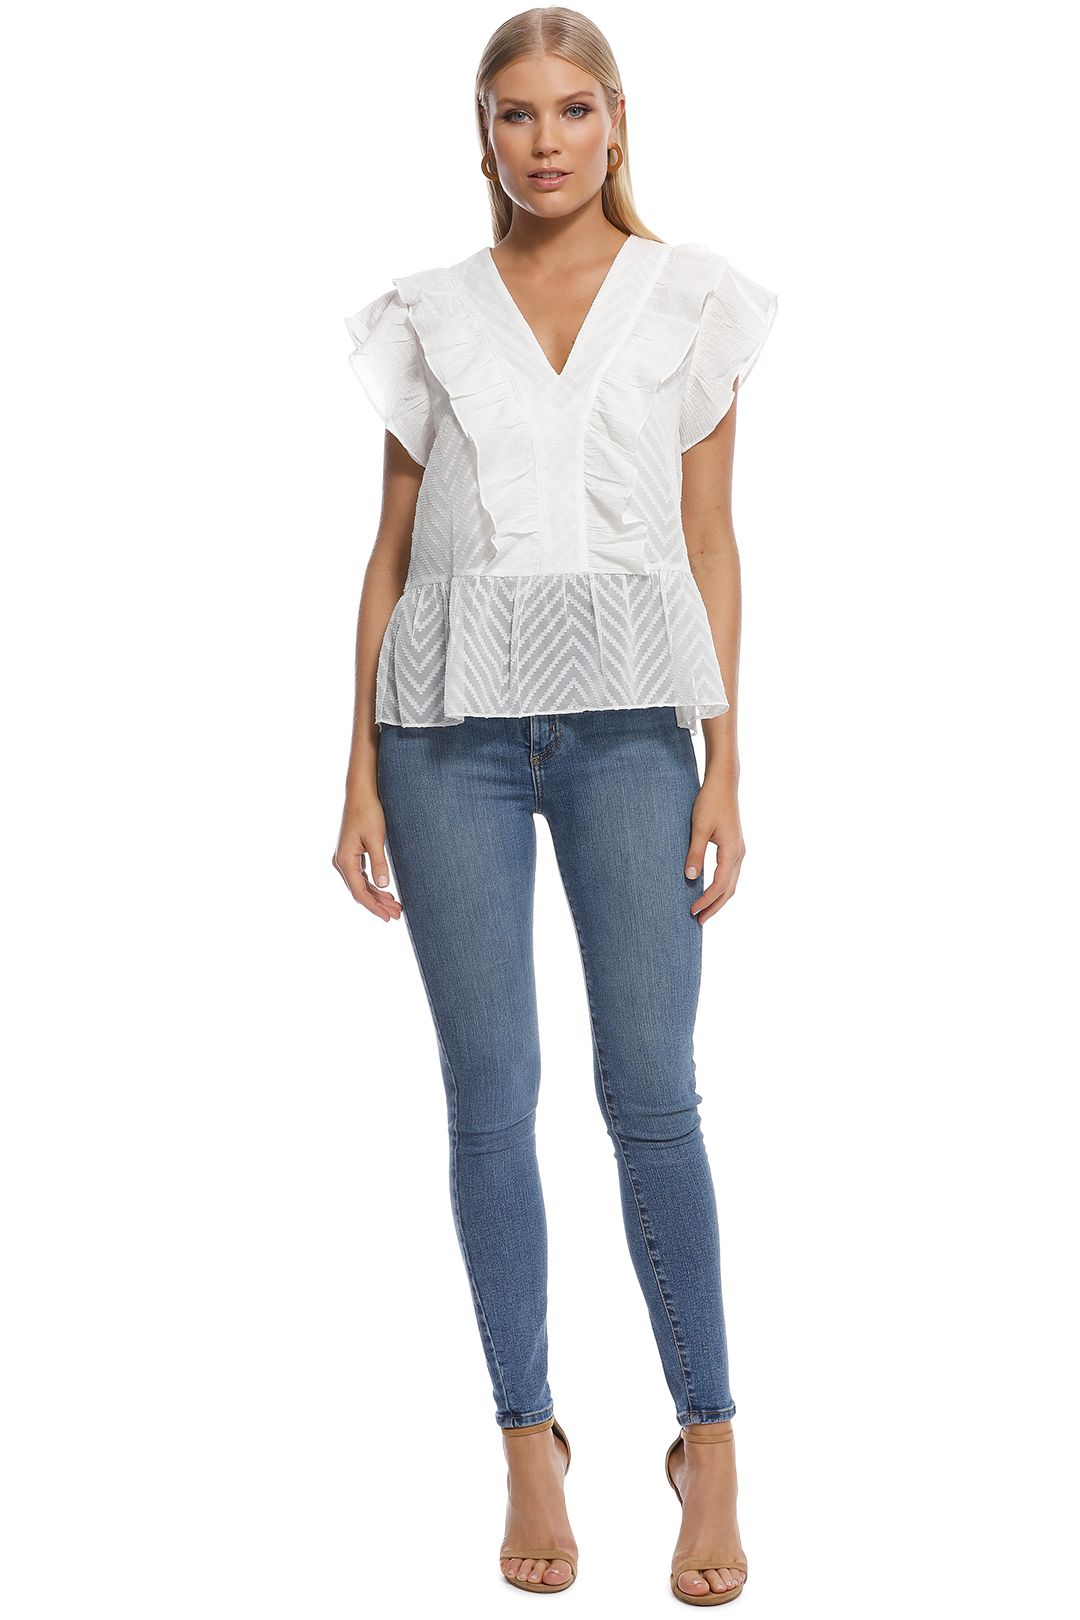 Wish - Sienna Ruffle Top - White - Front